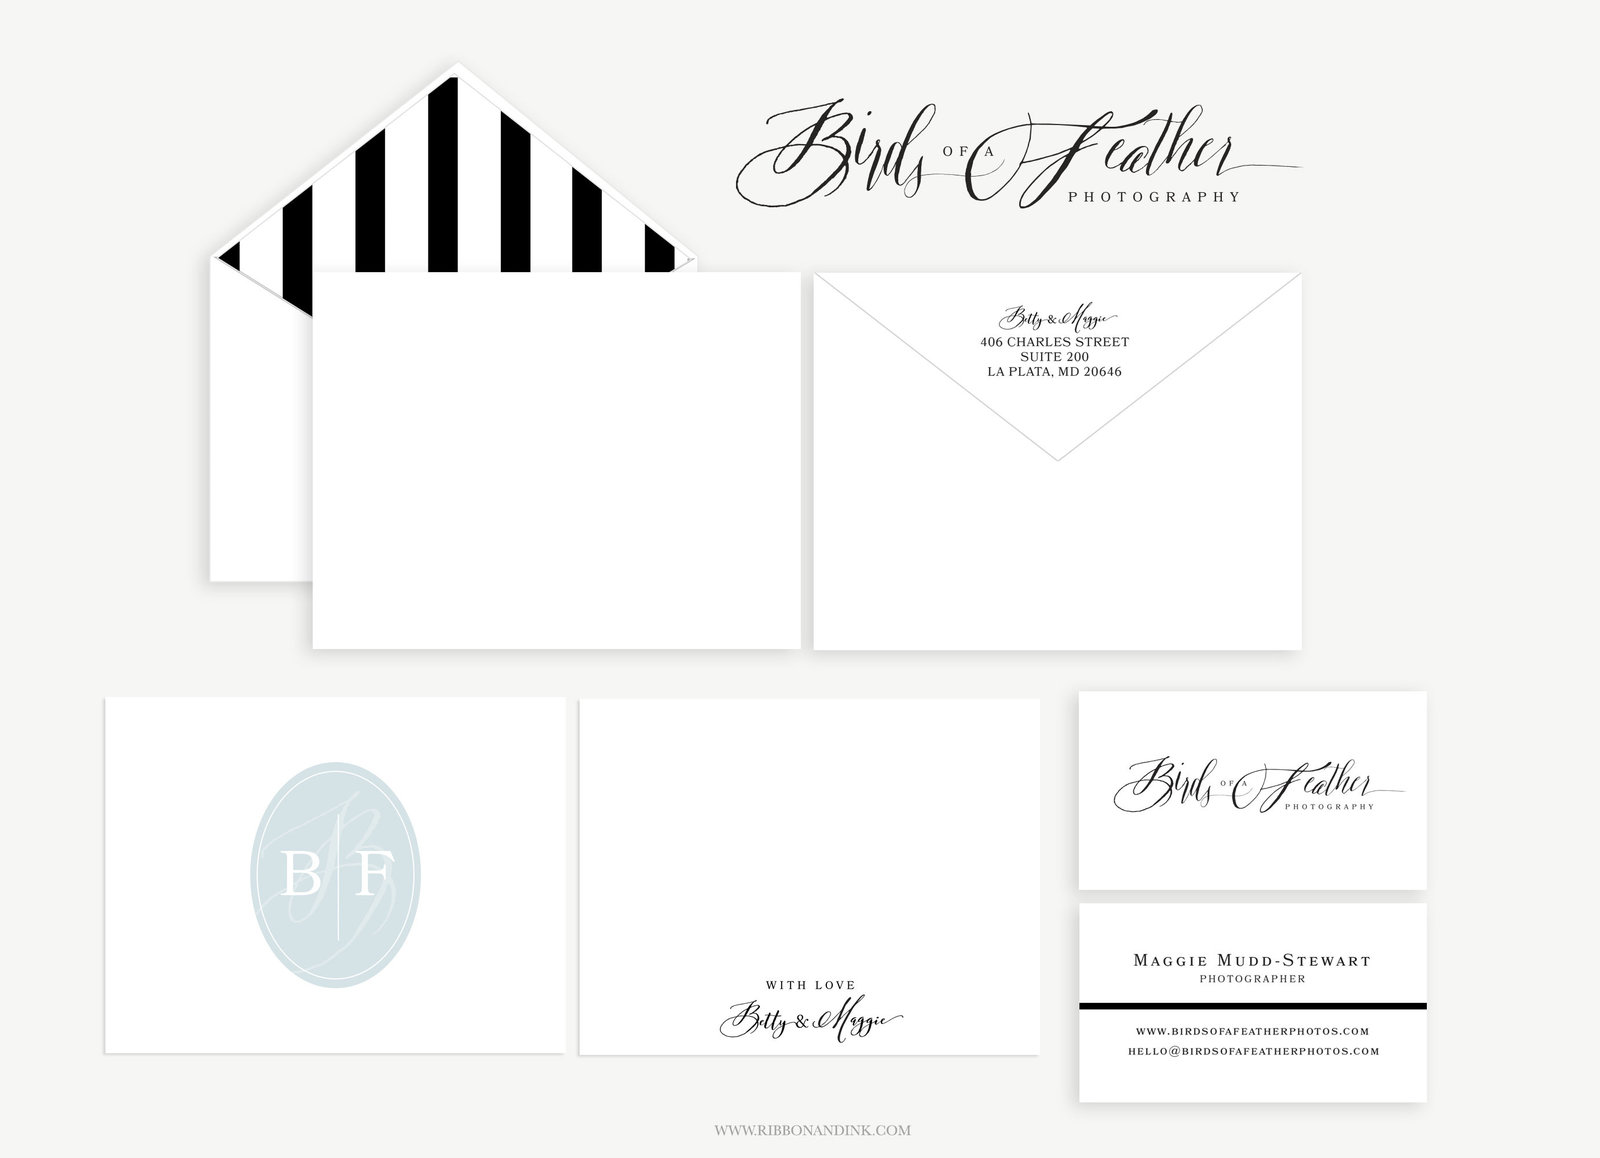 BOAF_Stationery_v03